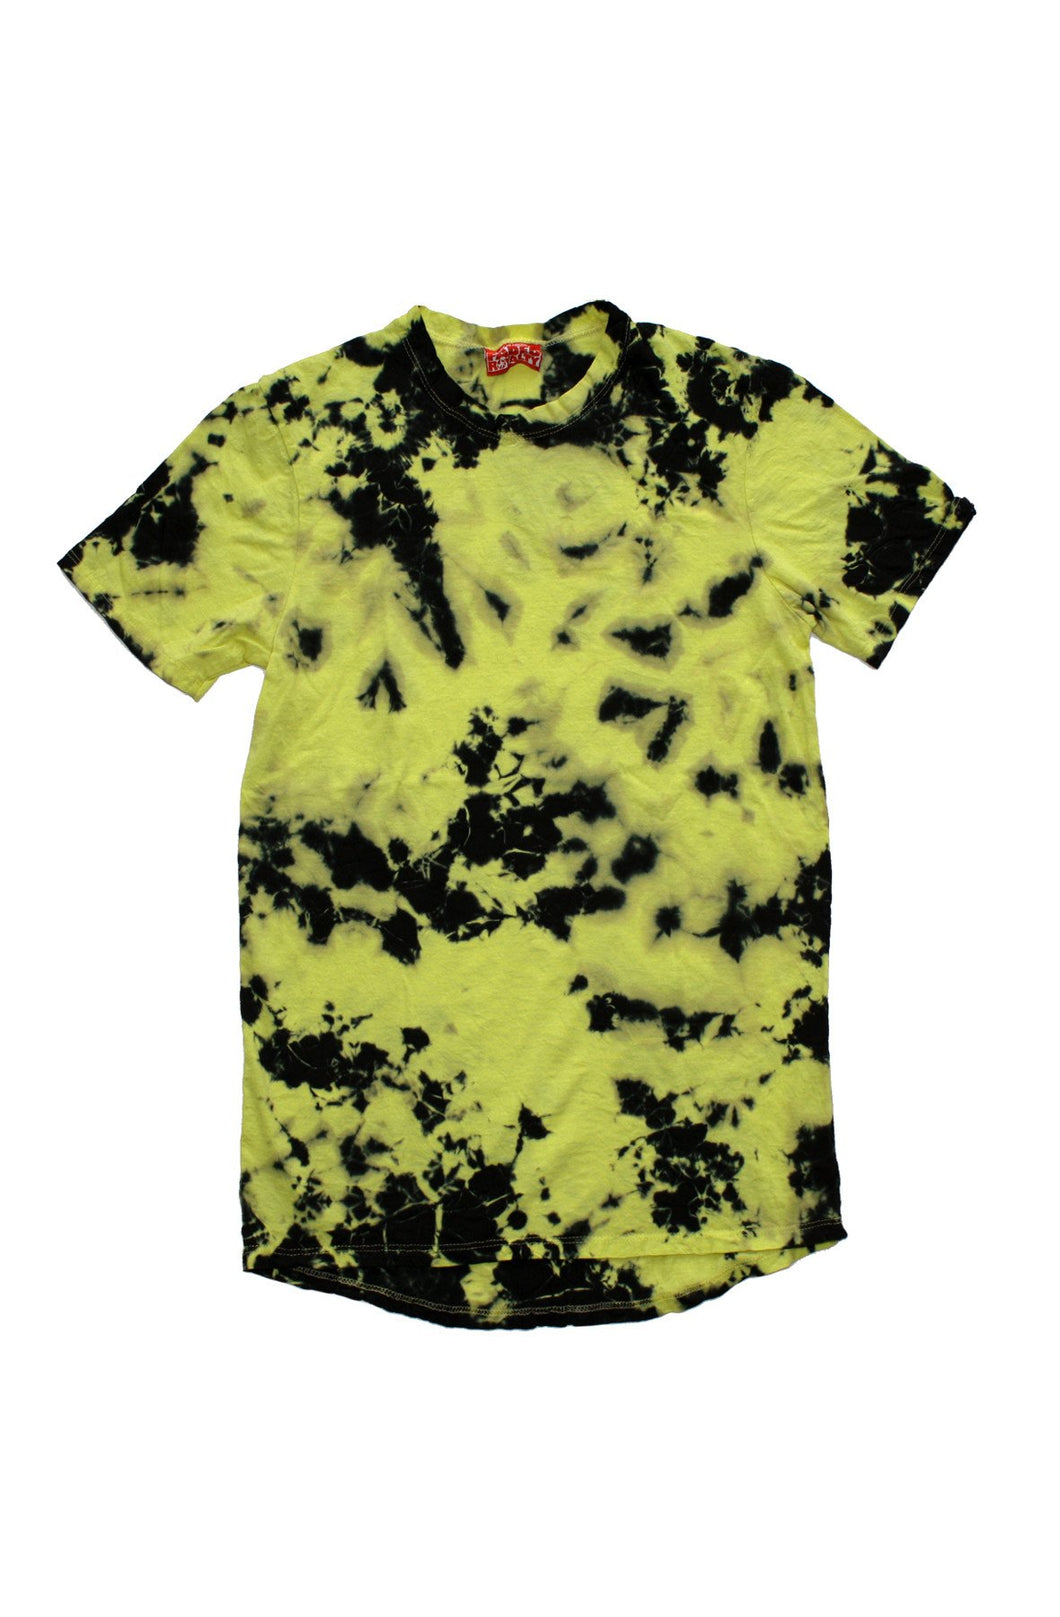 YELLOW ACID WASH TSHIRT